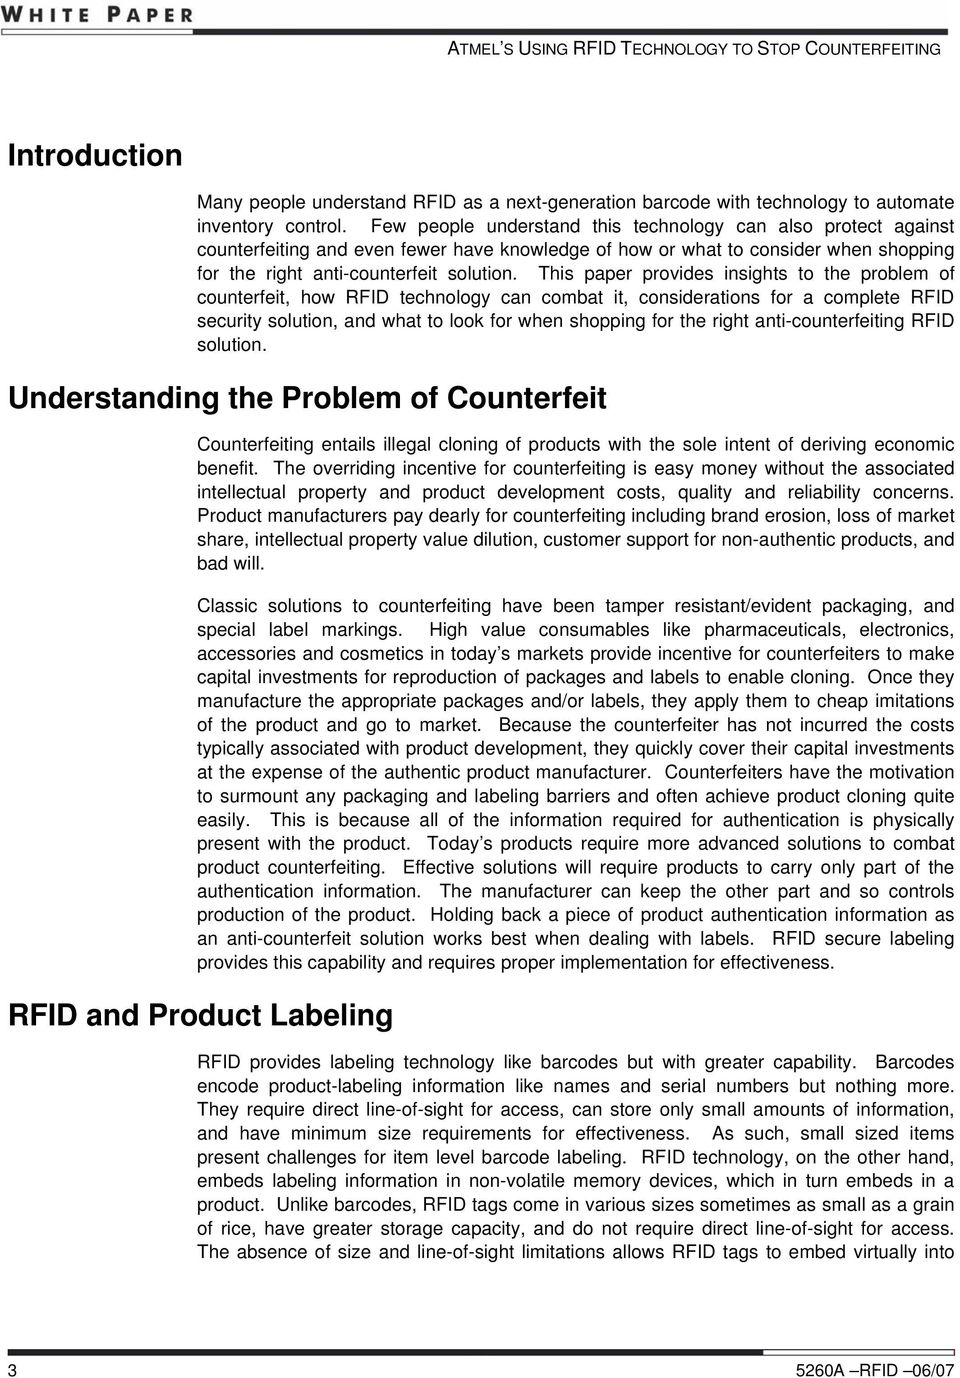 This paper provides insights to the problem of counterfeit, how RFID technology can combat it, considerations for a complete RFID security solution, and what to look for when shopping for the right